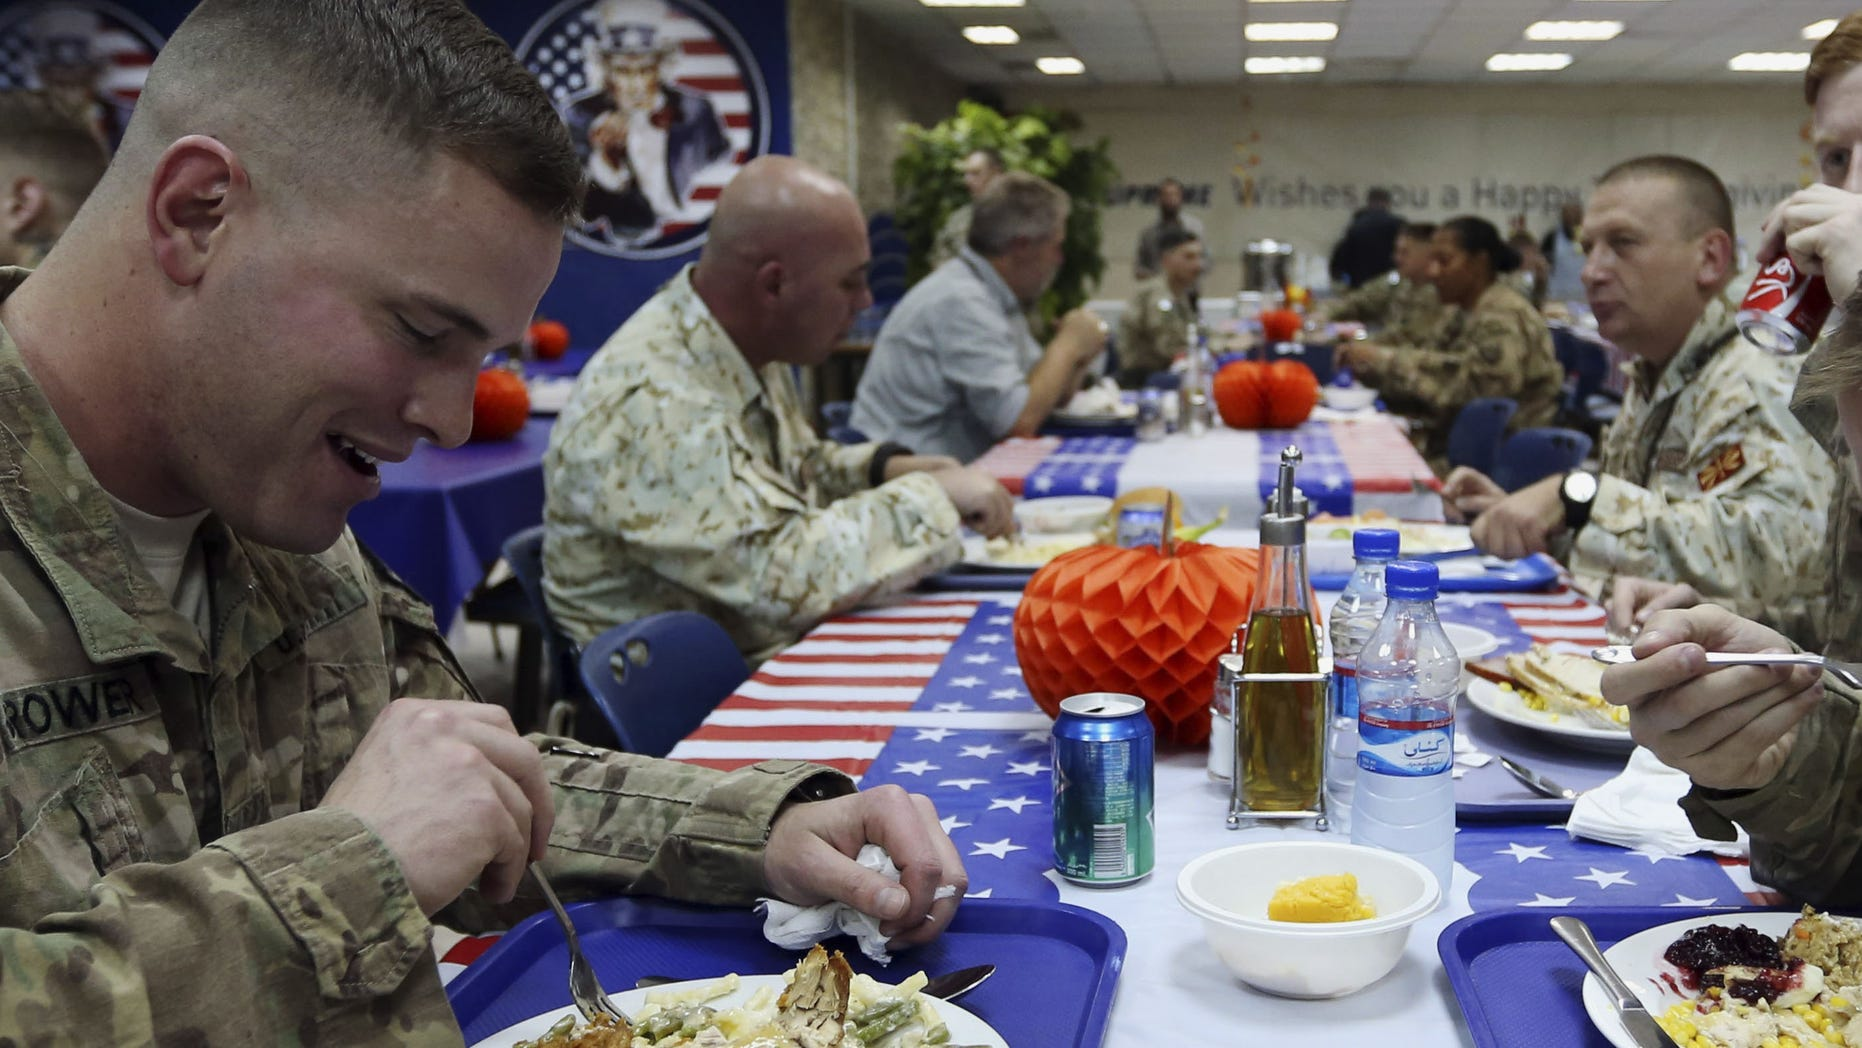 NATO soldiers have their Thanksgiving Day meals at the ISAF headquarters in Kabul, Afghanistan, Thursday, Nov. 27, 2014. This is the last Thanksgiving cerebration before the U.S. and NATO combat mission ends on Dec. 31 this year. (AP Photo/Rahmat Gul)